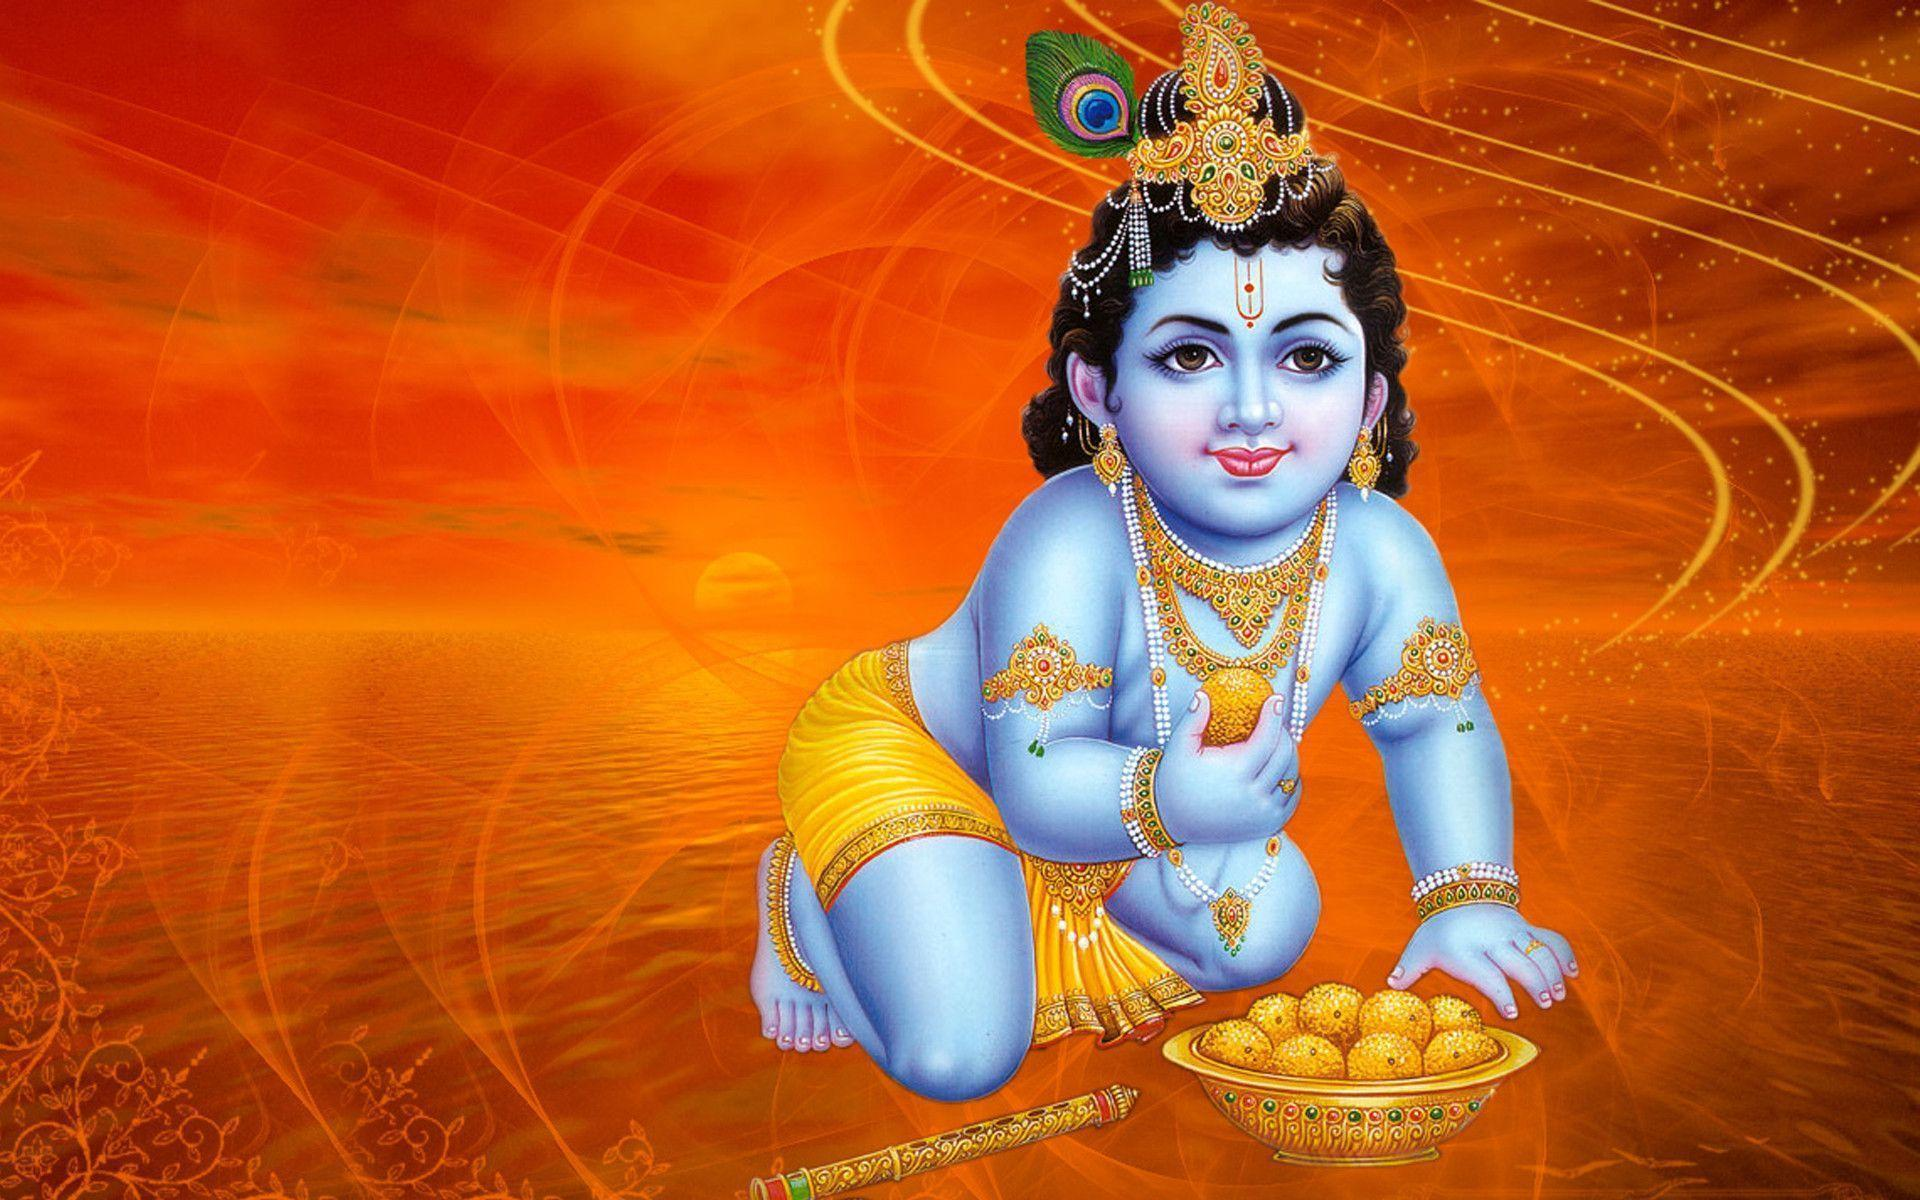 god wallpapers full hd wallpaper search a· download